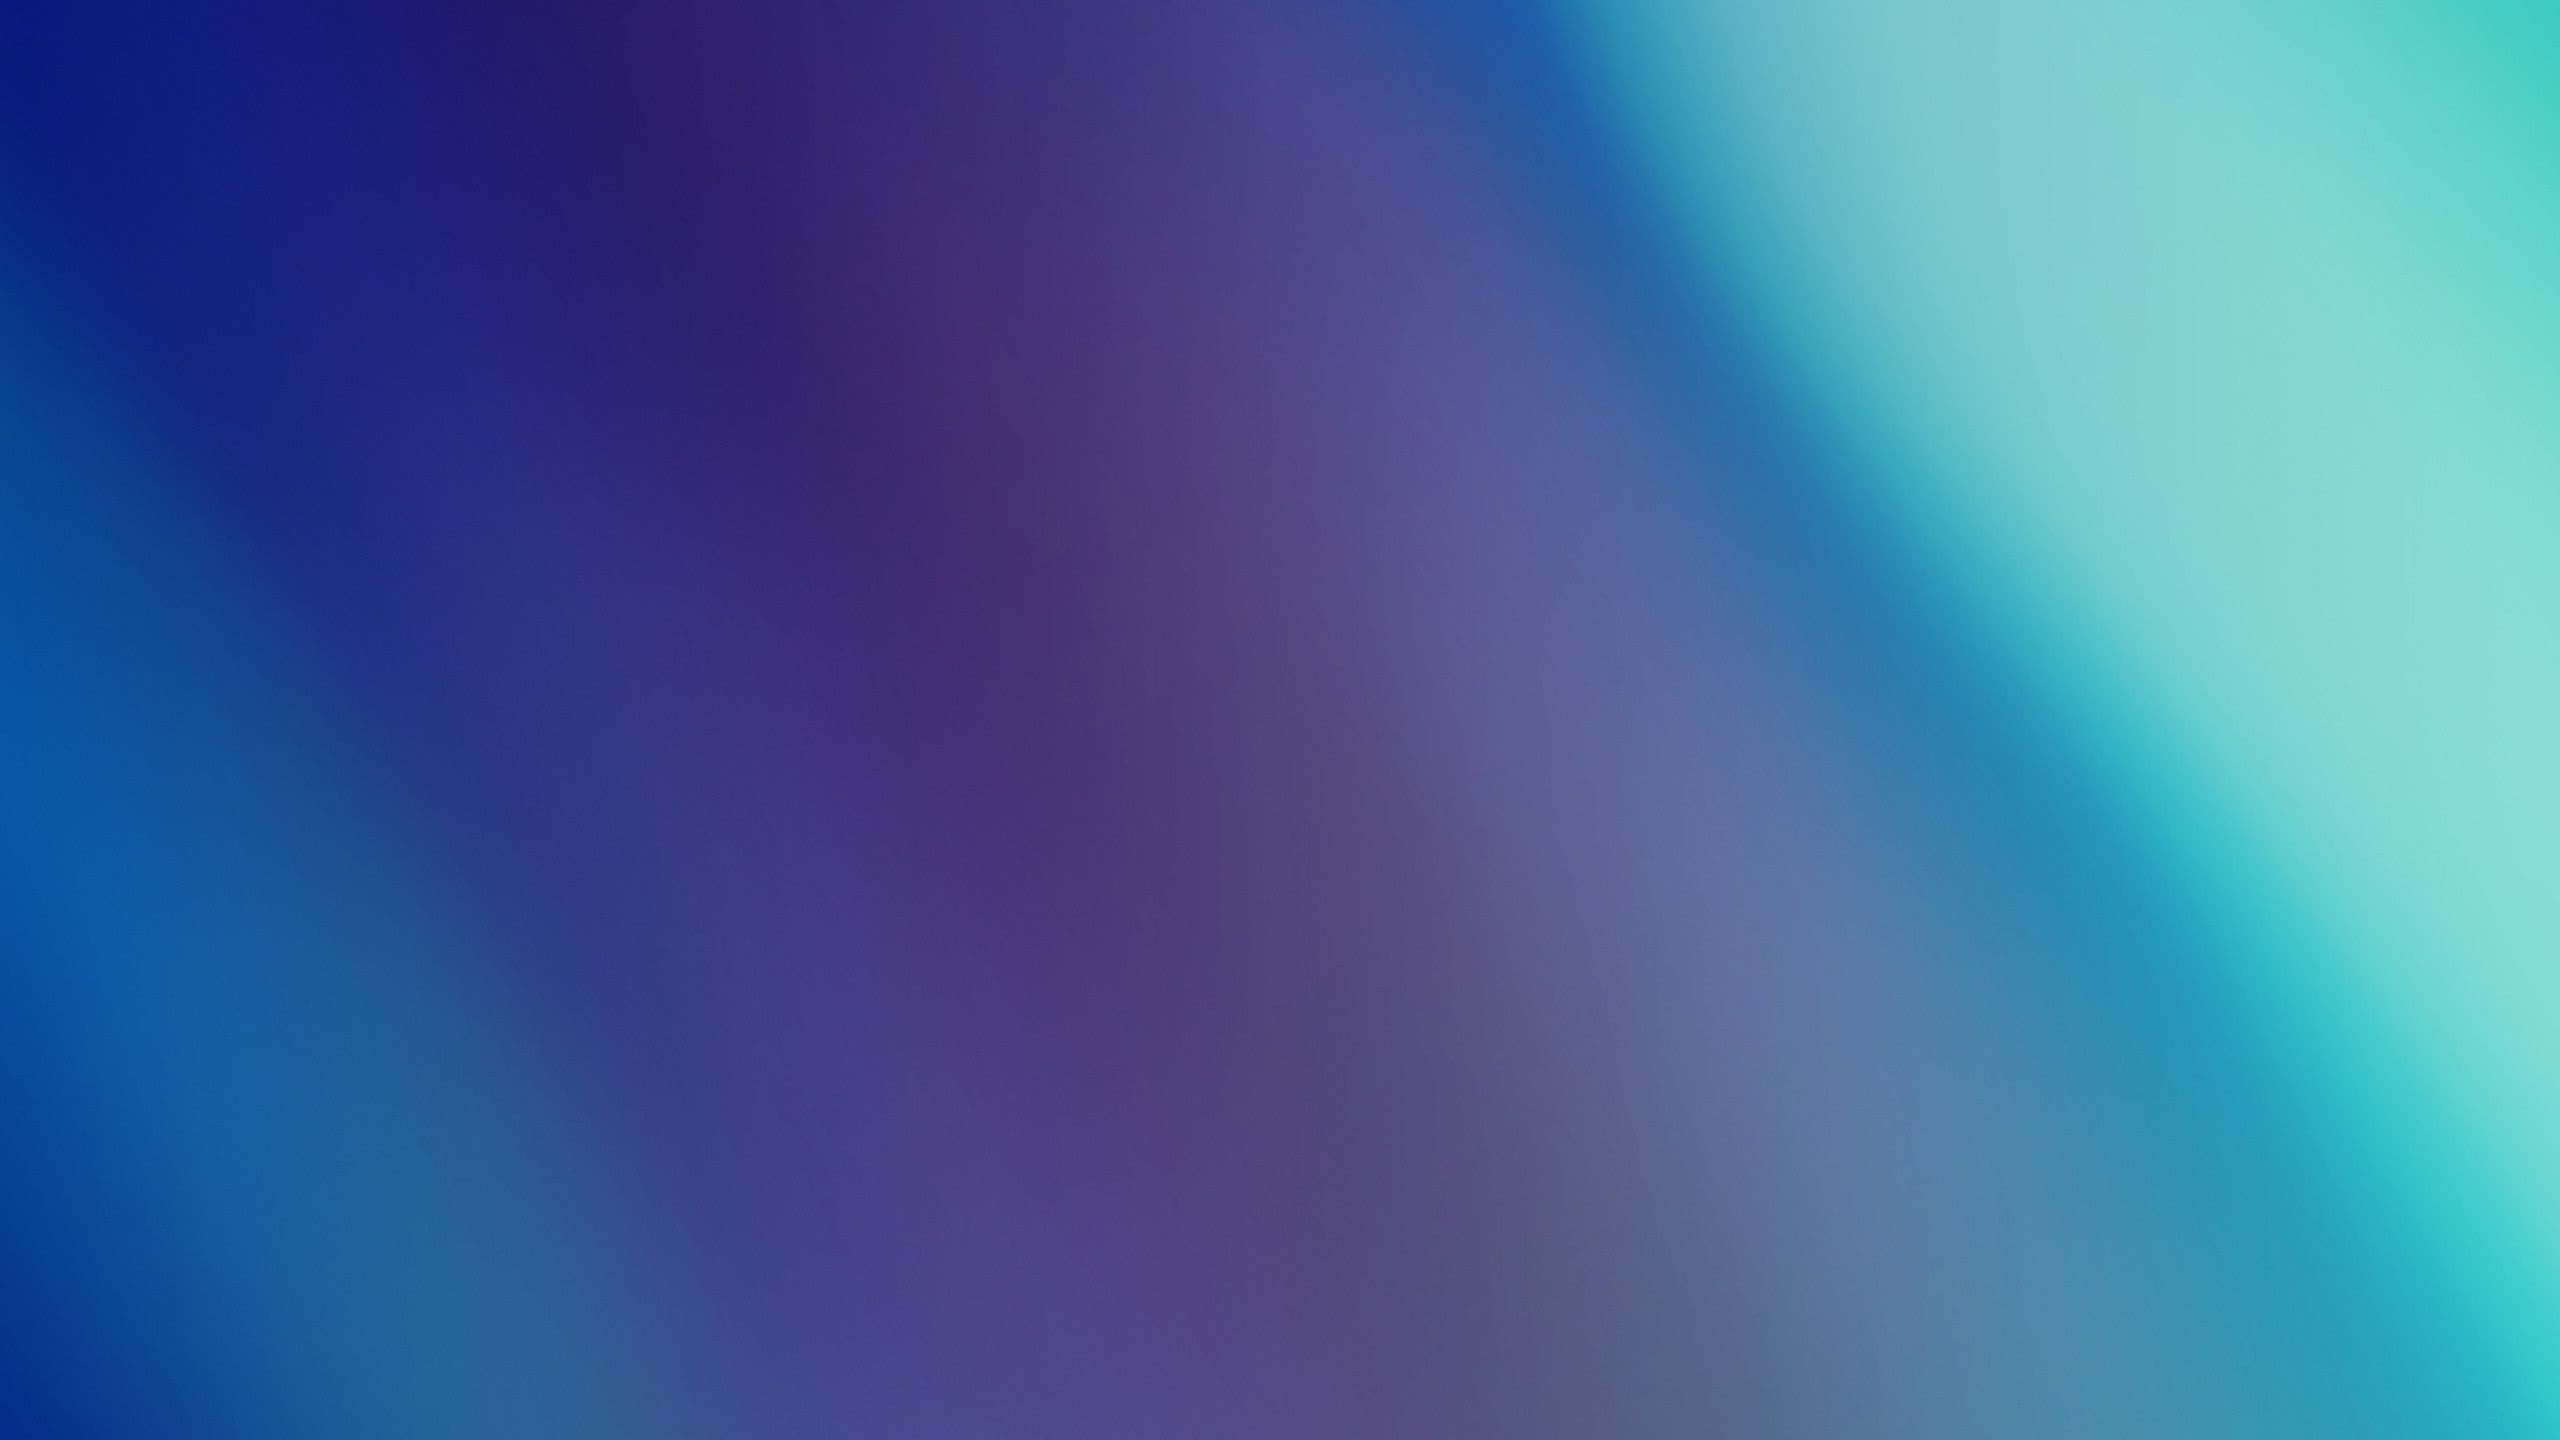 Gradient Blue Green Wqhd 1440p Wallpaper Pixelz